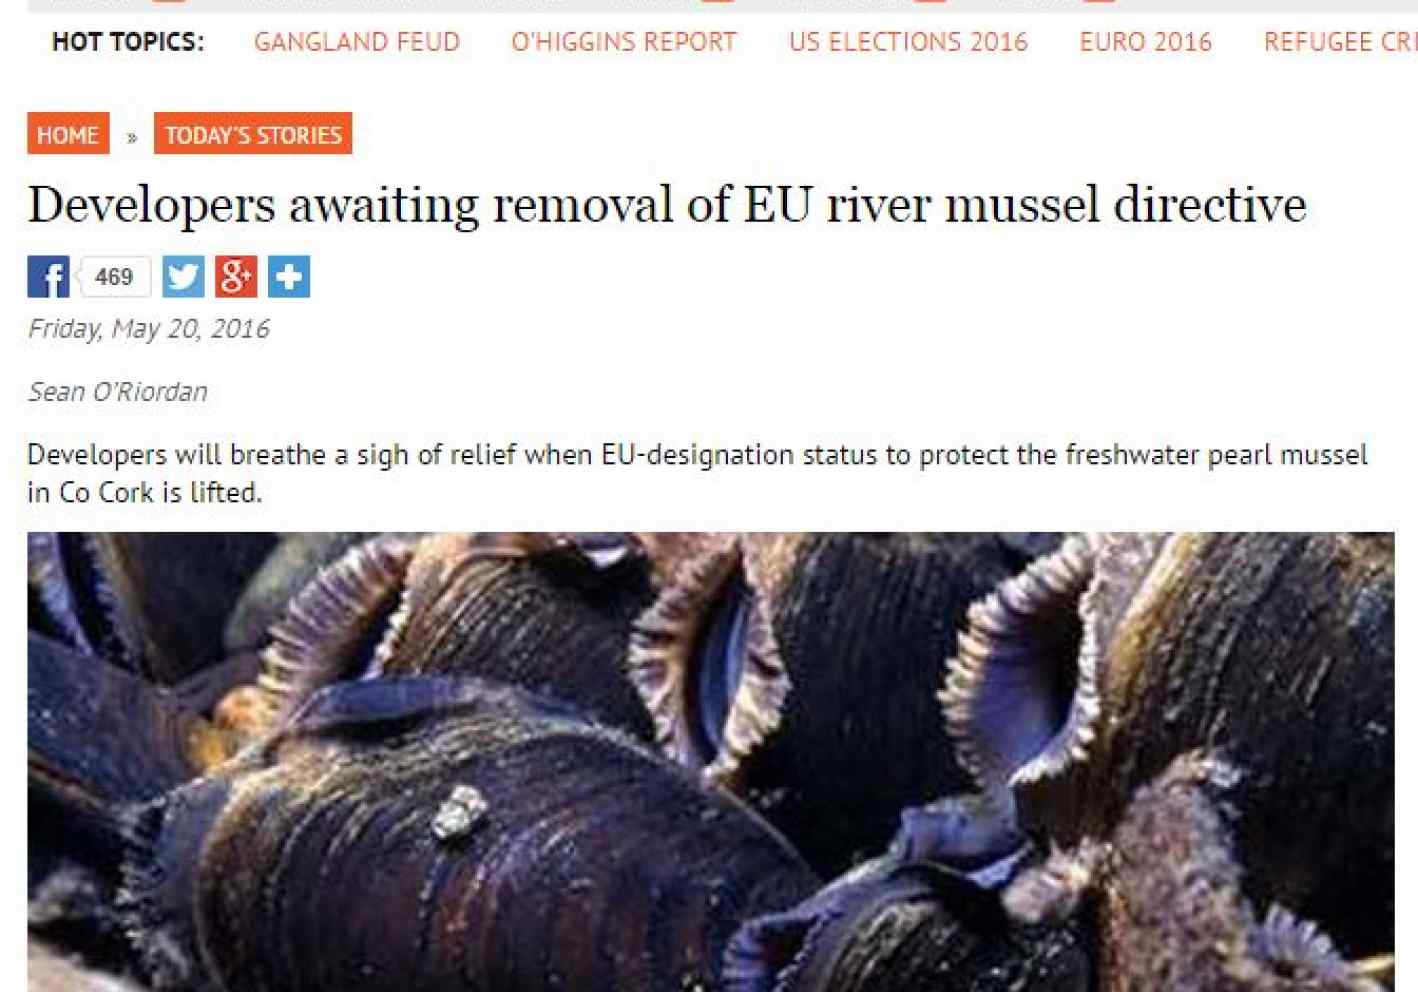 Developers awaiting removal of EU river mussel directive